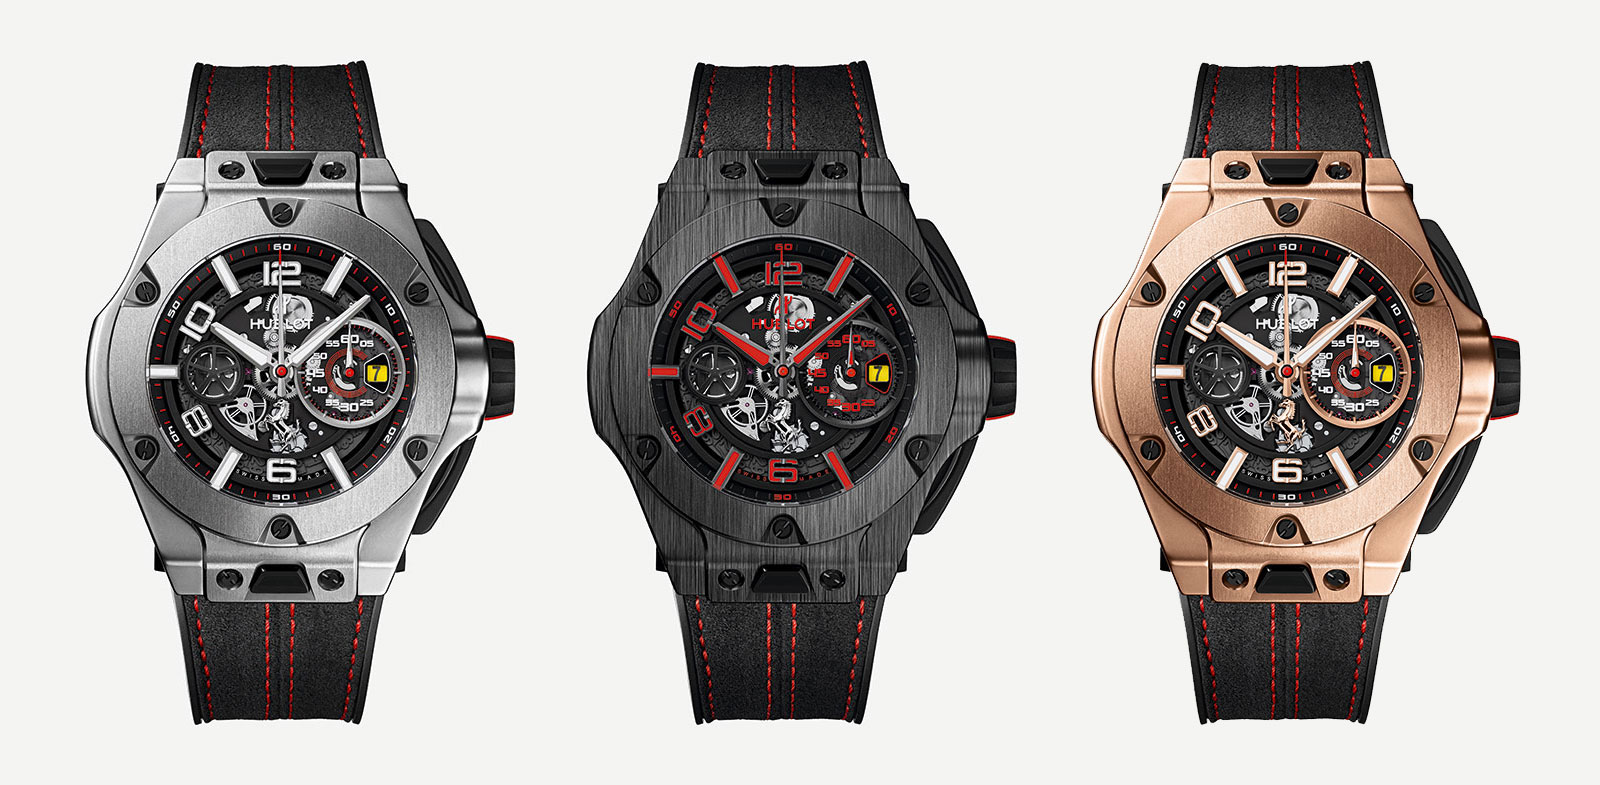 Hublot-Big-Bang-Ferrari-Unico-2016a